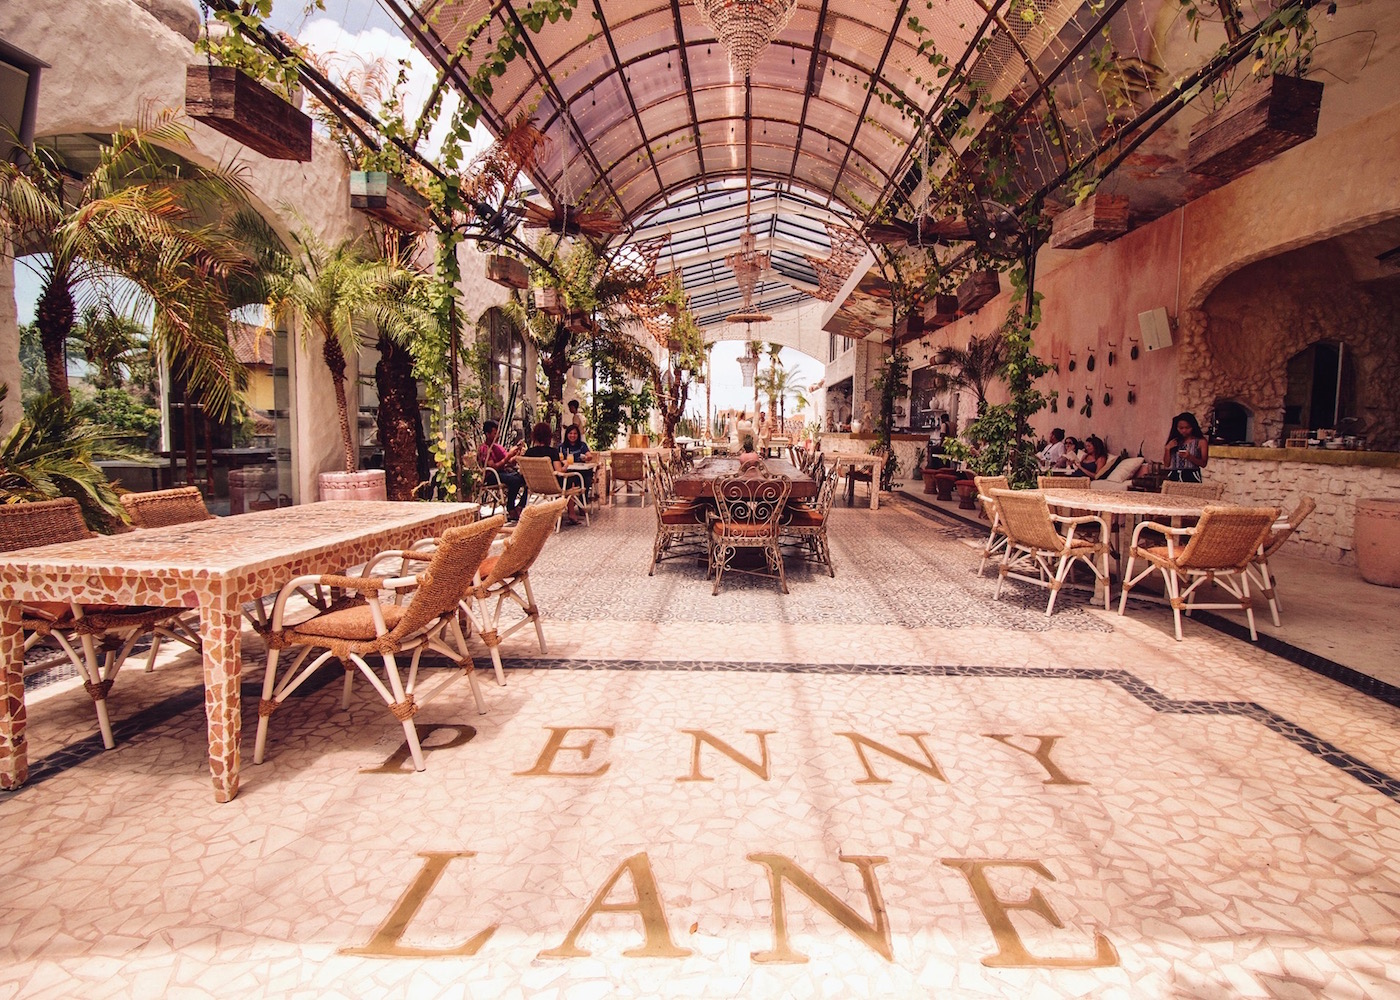 Penny Lane restaurant & bar in Canggu, Bali, indonesia